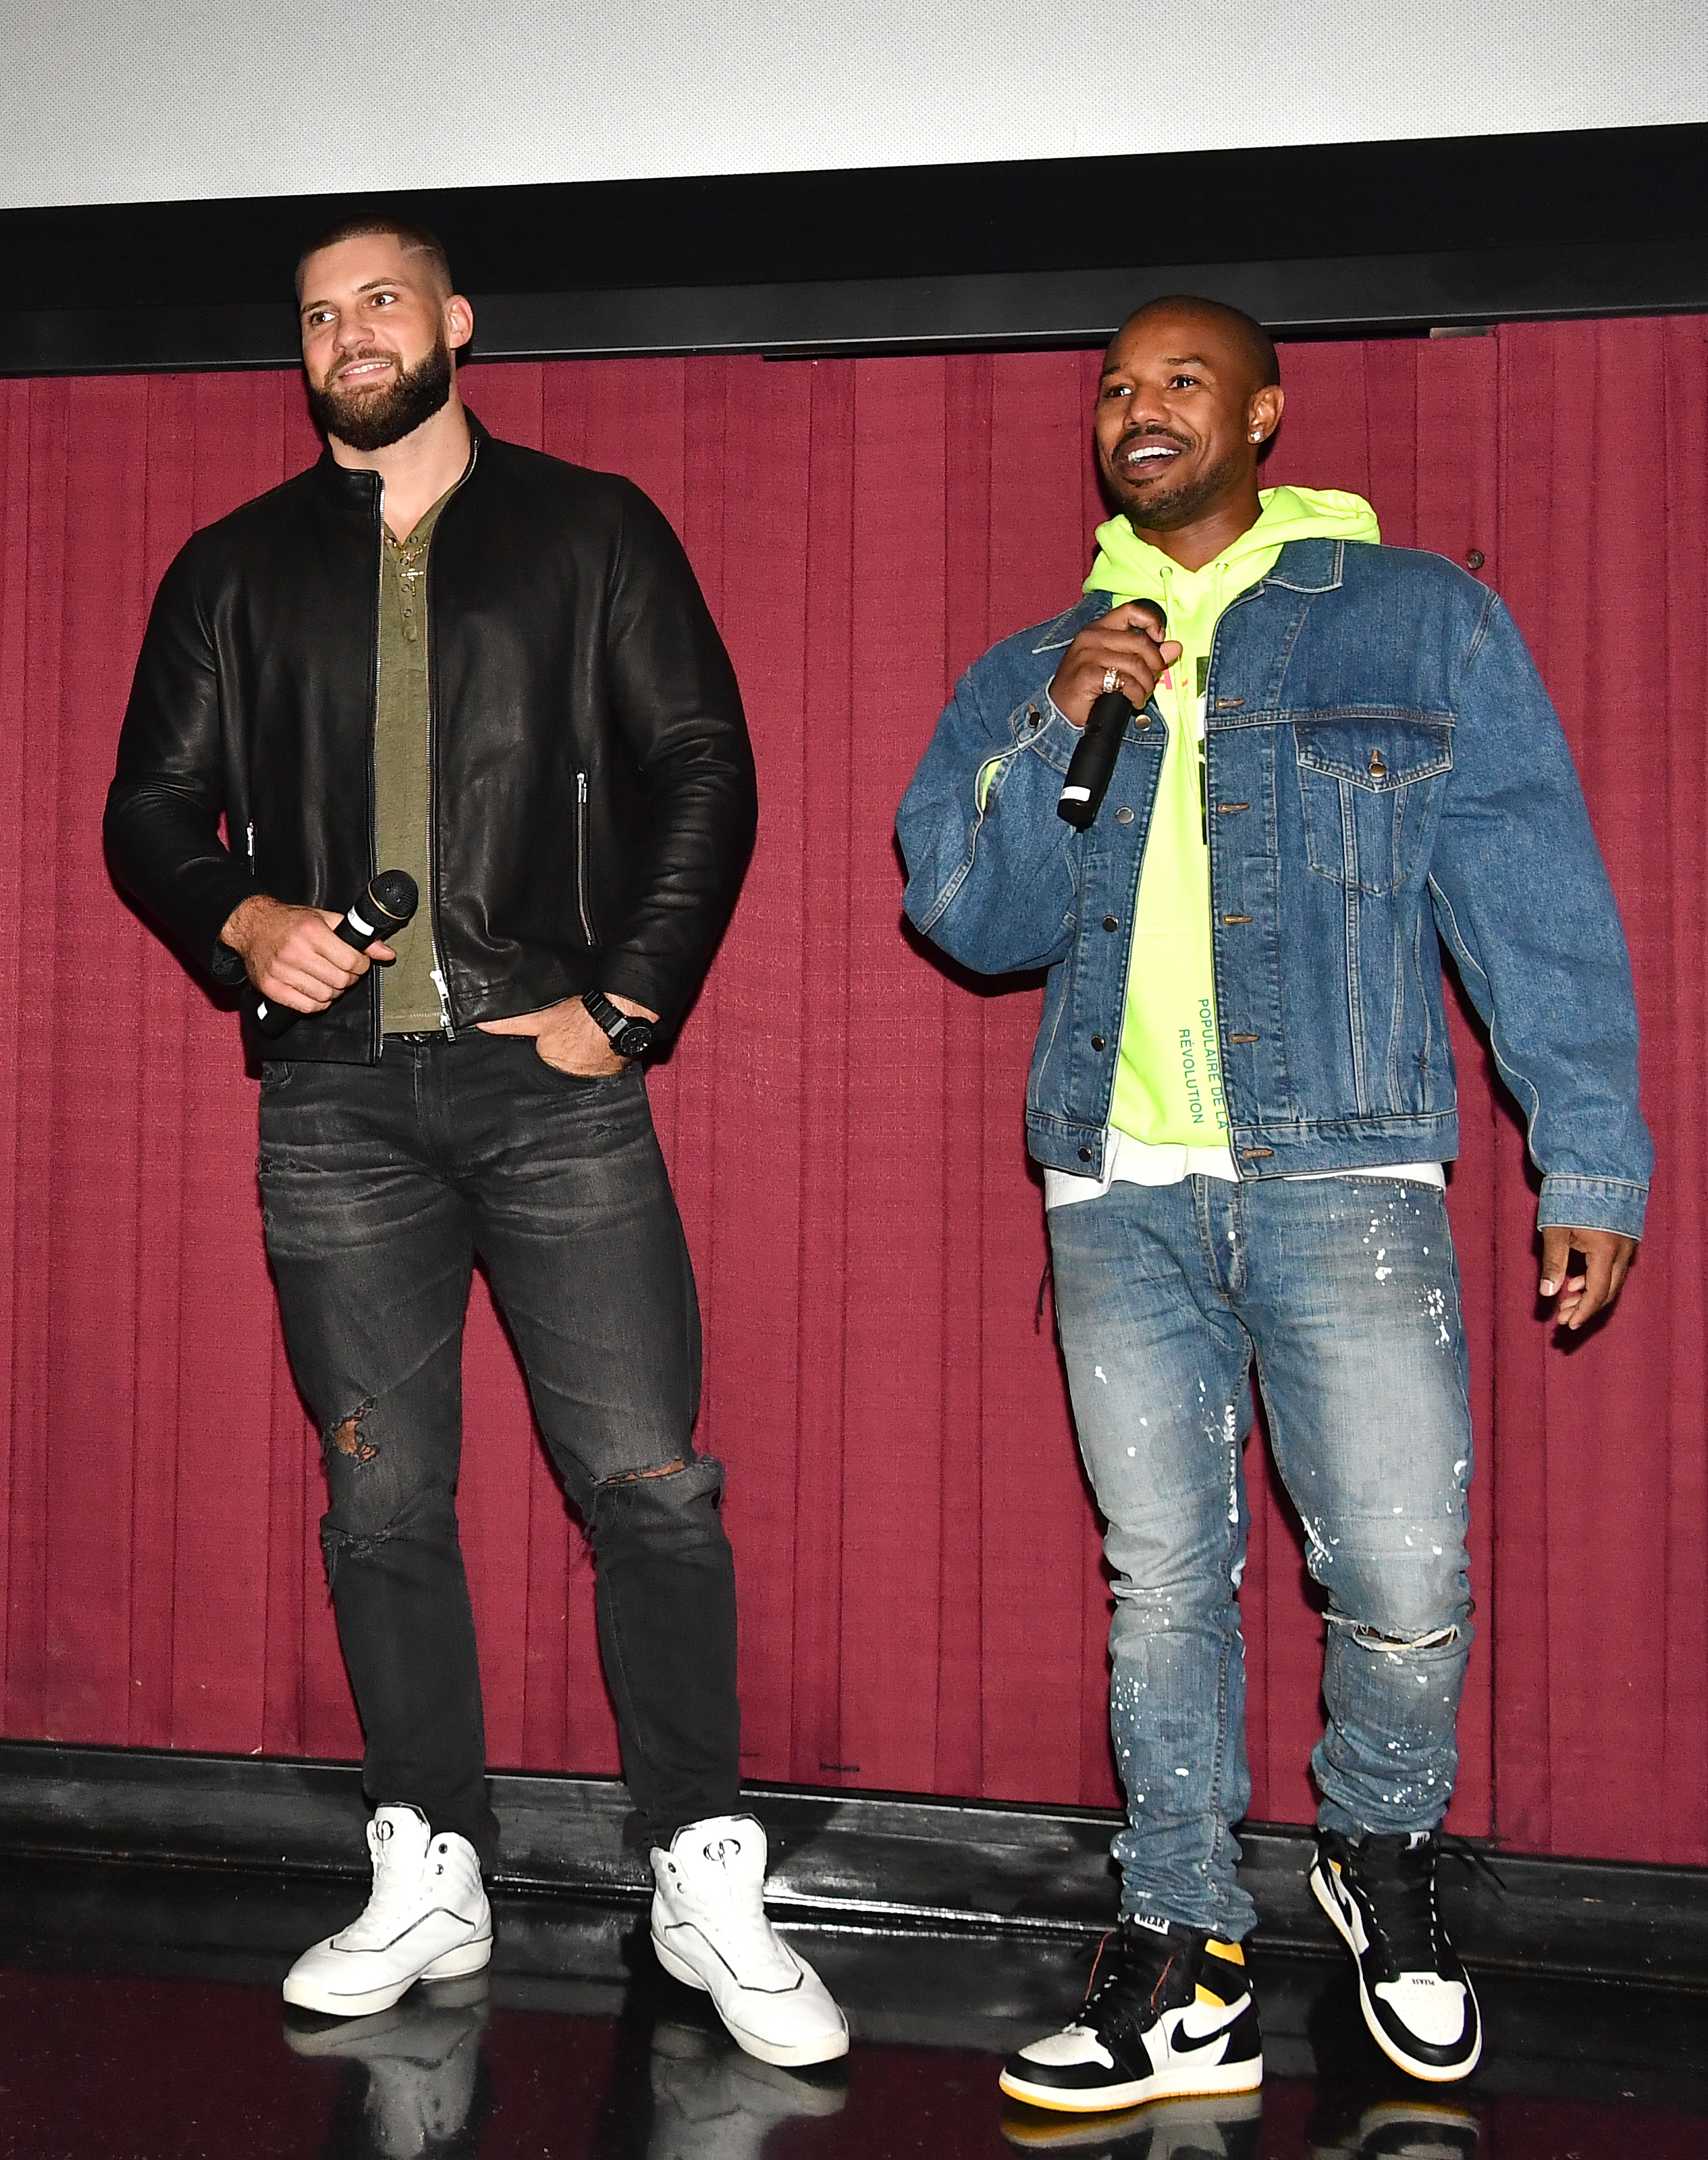 Actors Florian Munteanu and Michael B. Jordan surprise moviegoers during the 'Creed 2' Atlanta screening at Regal Atlantic Station on November 7, 2018 in Atlanta, Georgia.